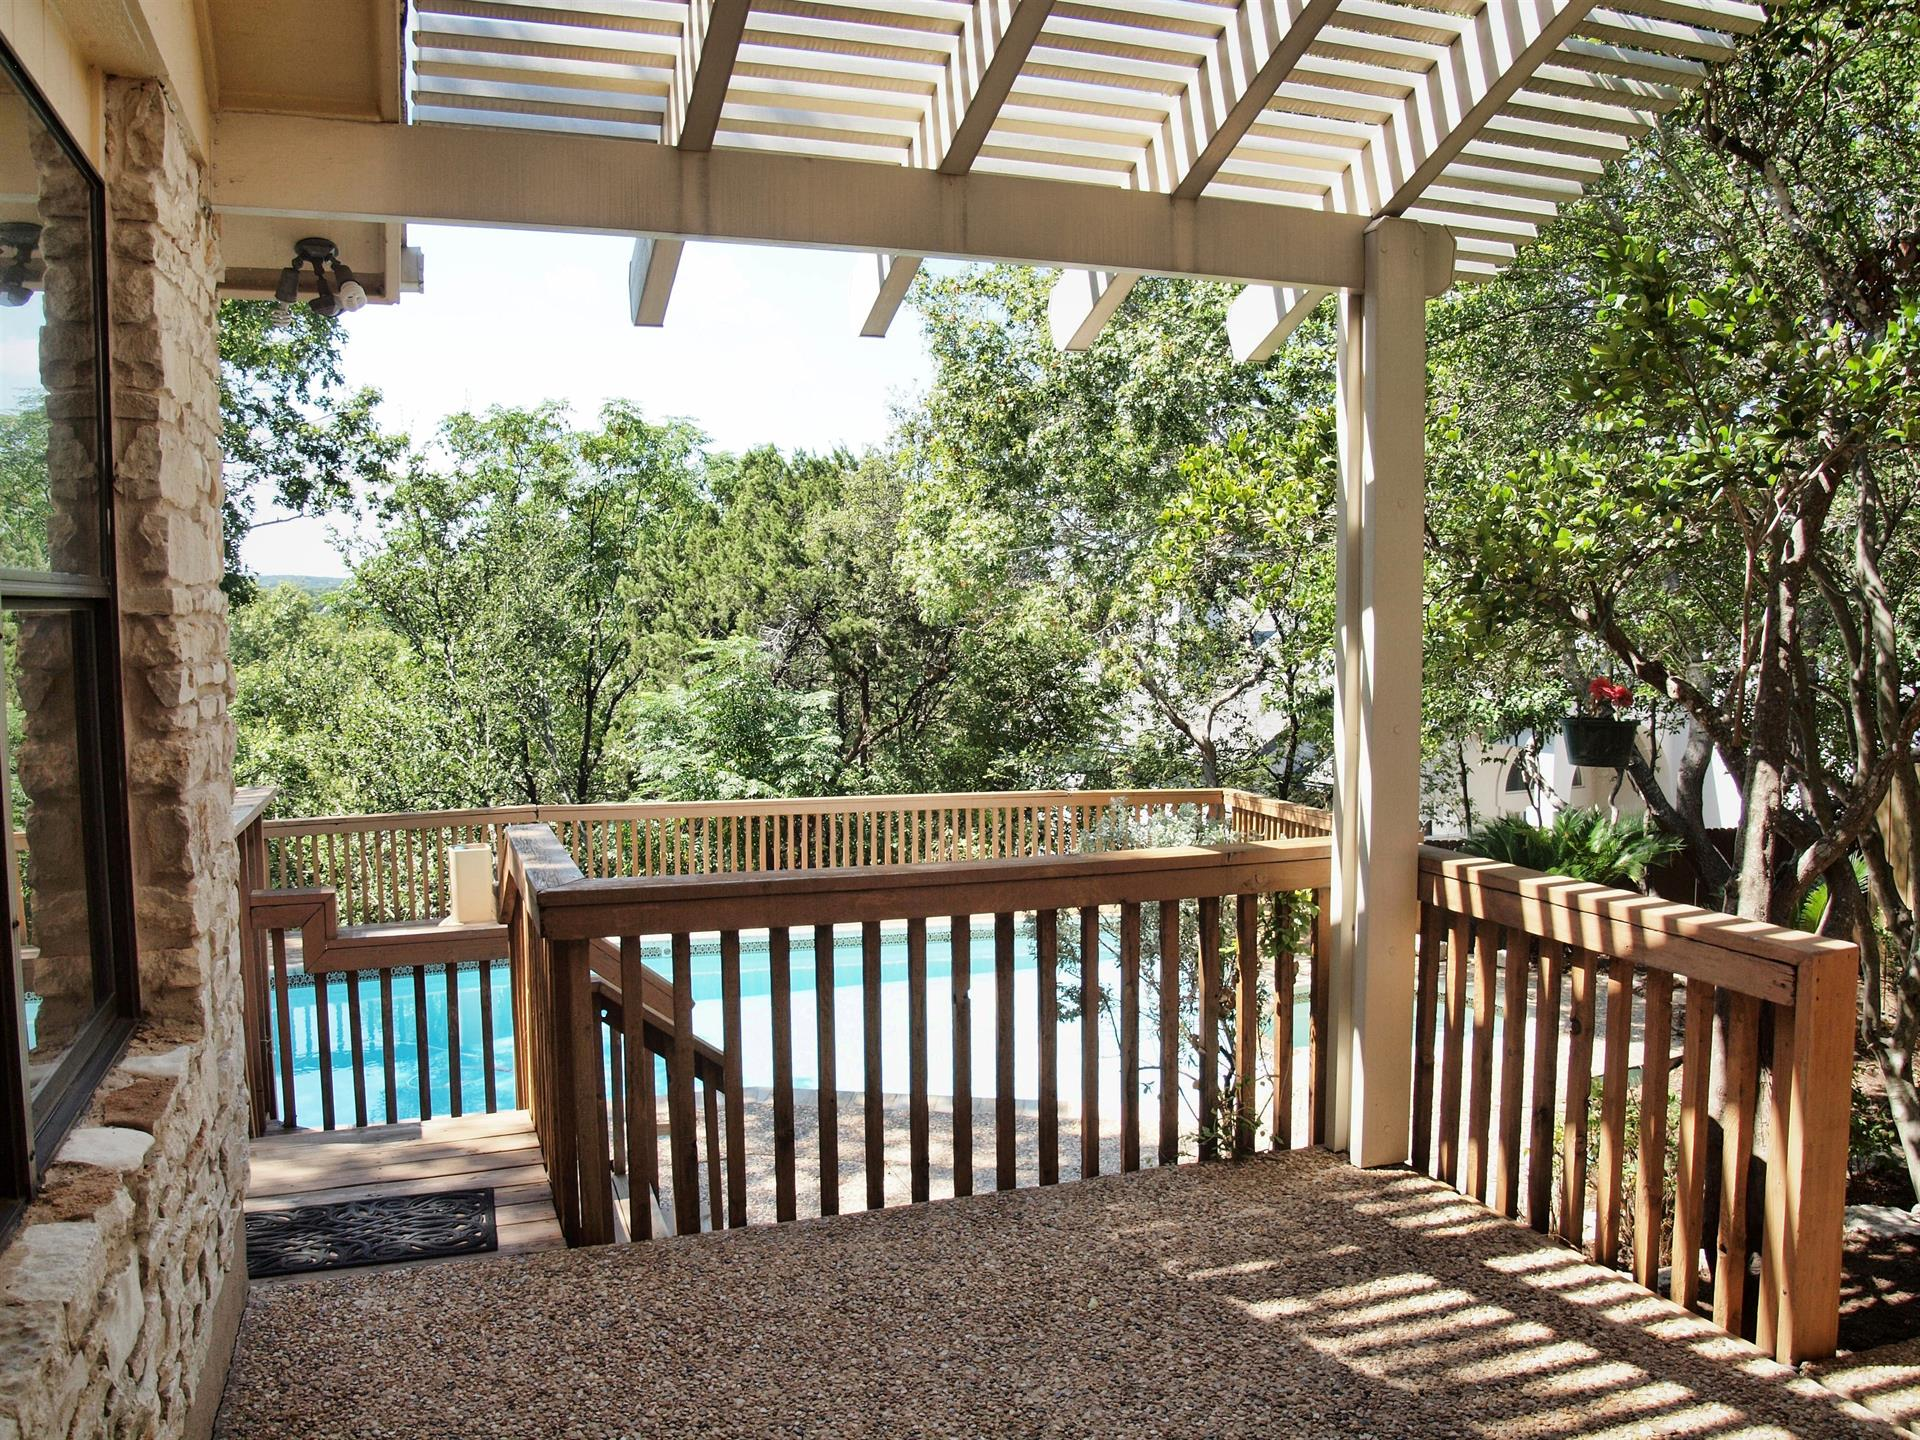 Additional photo for property listing at 5111 Saddleridge Cove  Austin, Texas 78759 Estados Unidos